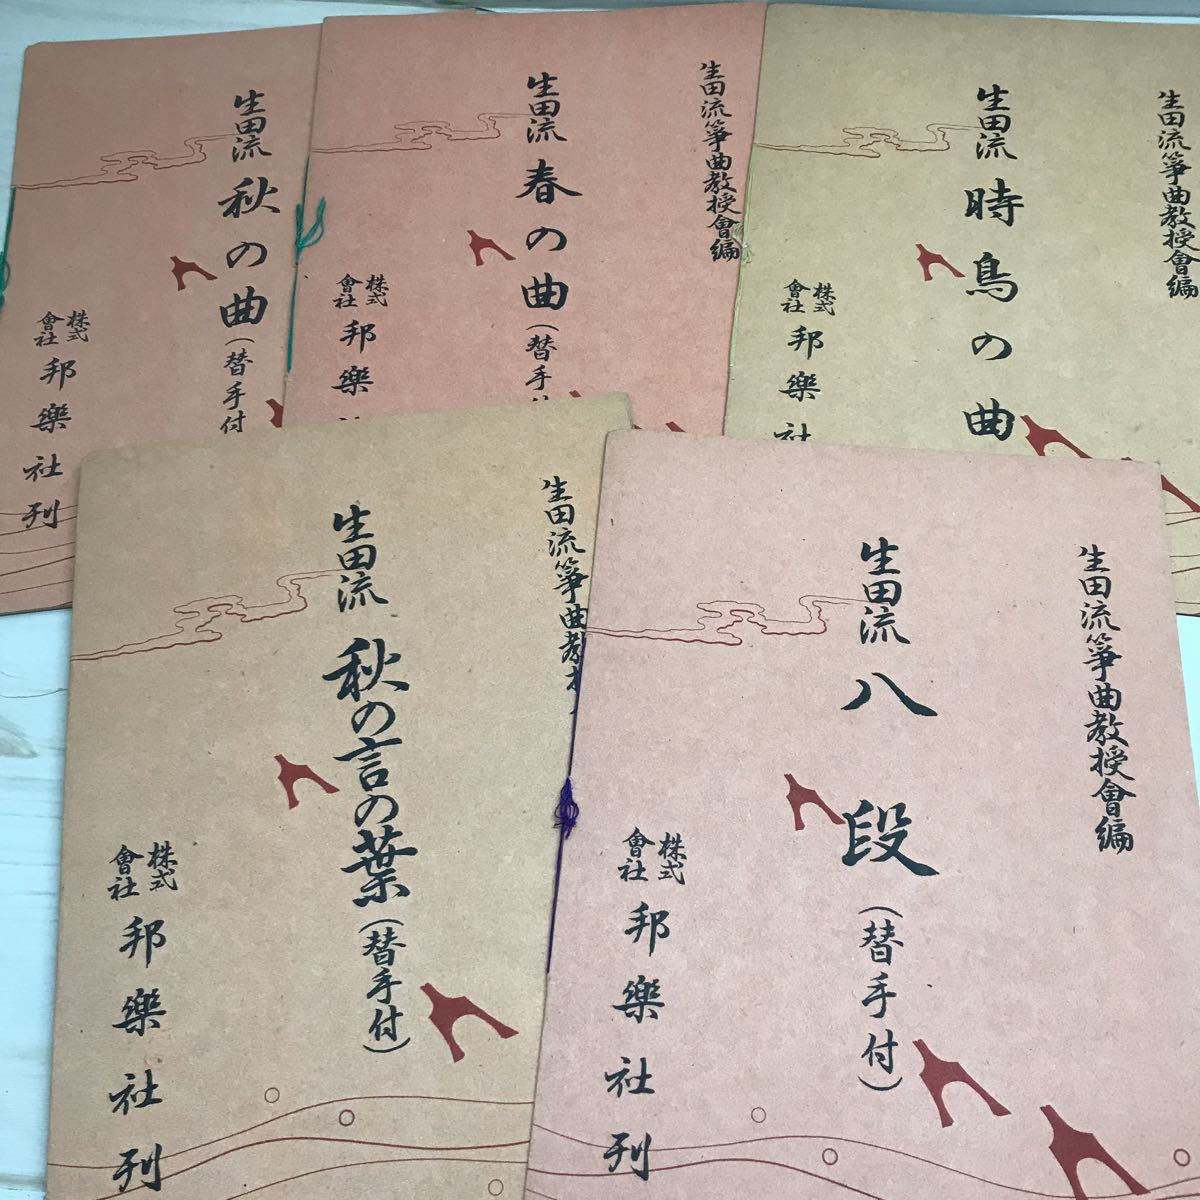 [Old book / current passing T1089] 生 箏 箏 会 曲 曲 曲 曲 曲 楽 楽 楽 高 高 高 高 高 高 高 高 初 初